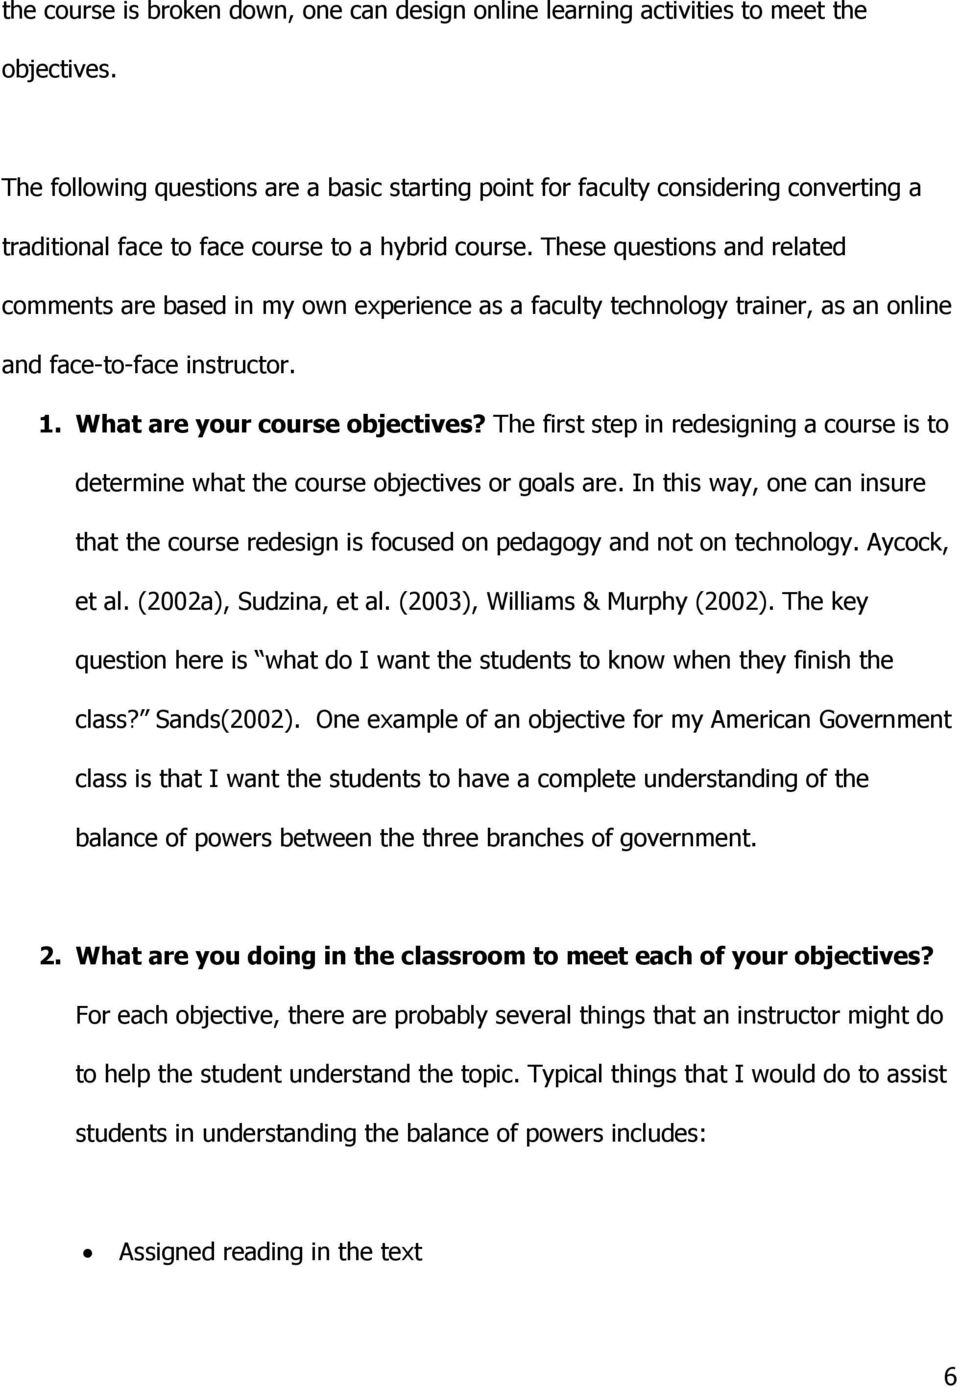 These questions and related comments are based in my own experience as a faculty technology trainer, as an online and face-to-face instructor. 1. What are your course objectives?